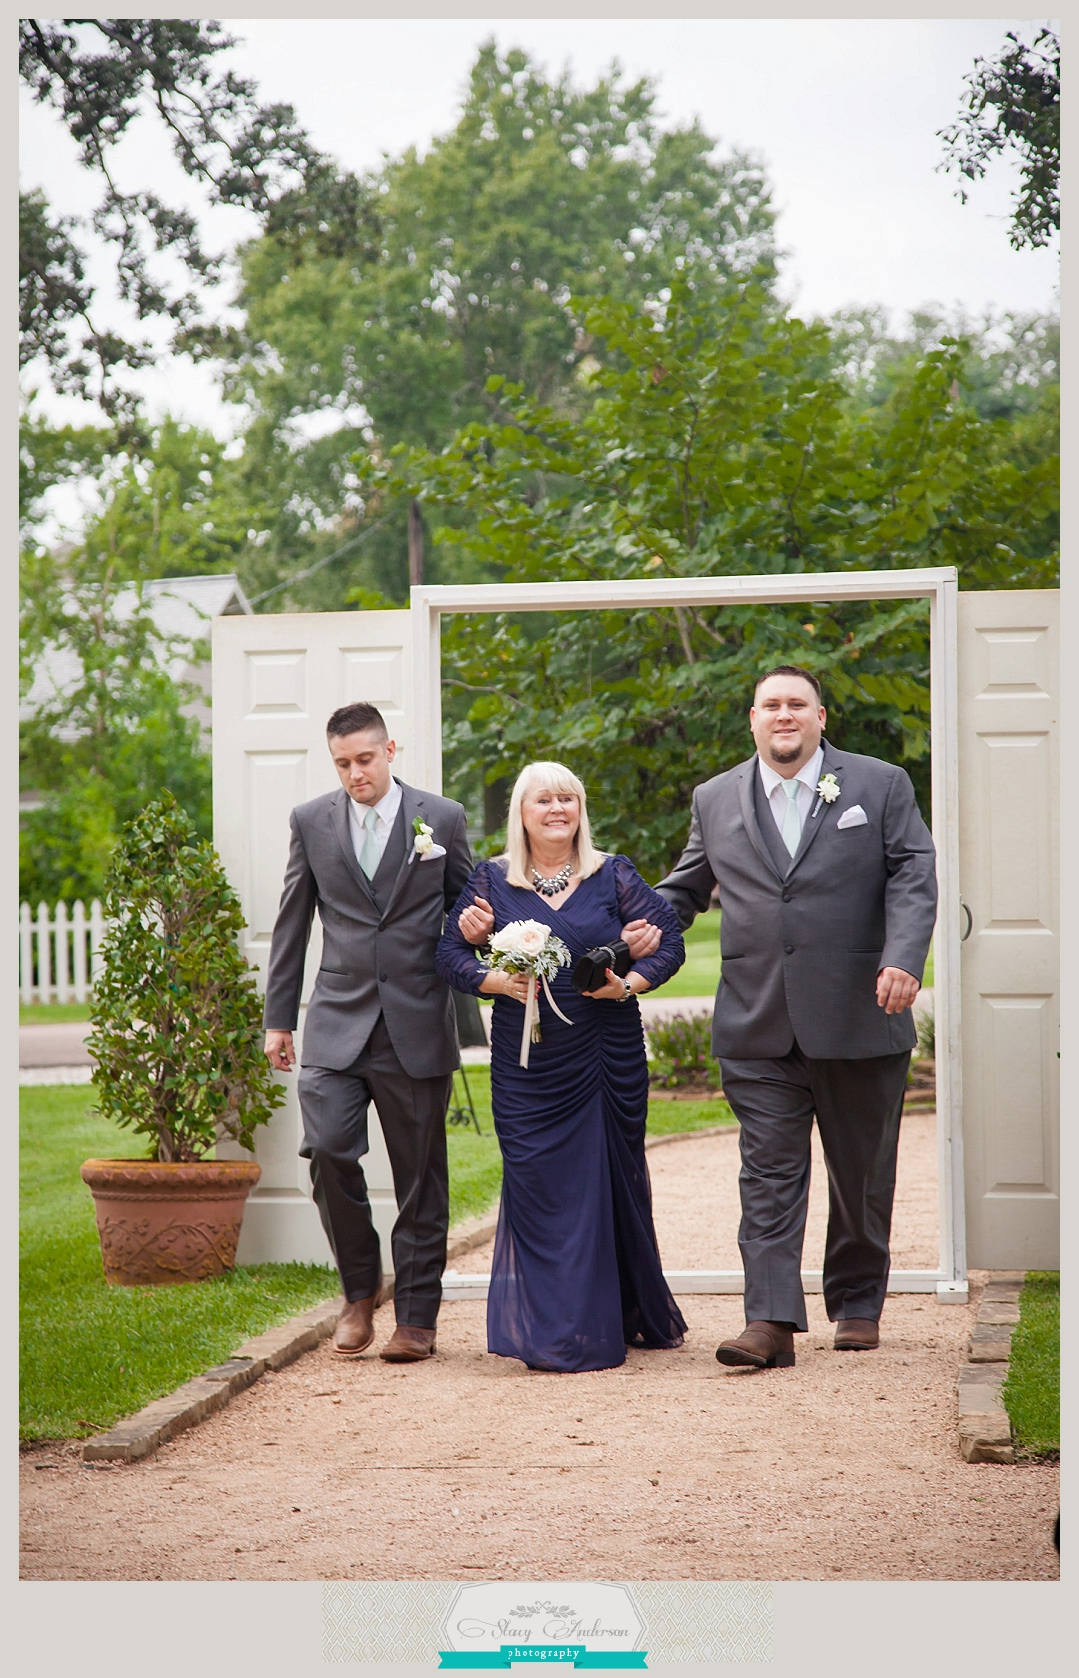 Butler's Courtyard Wedding Photographer (74)